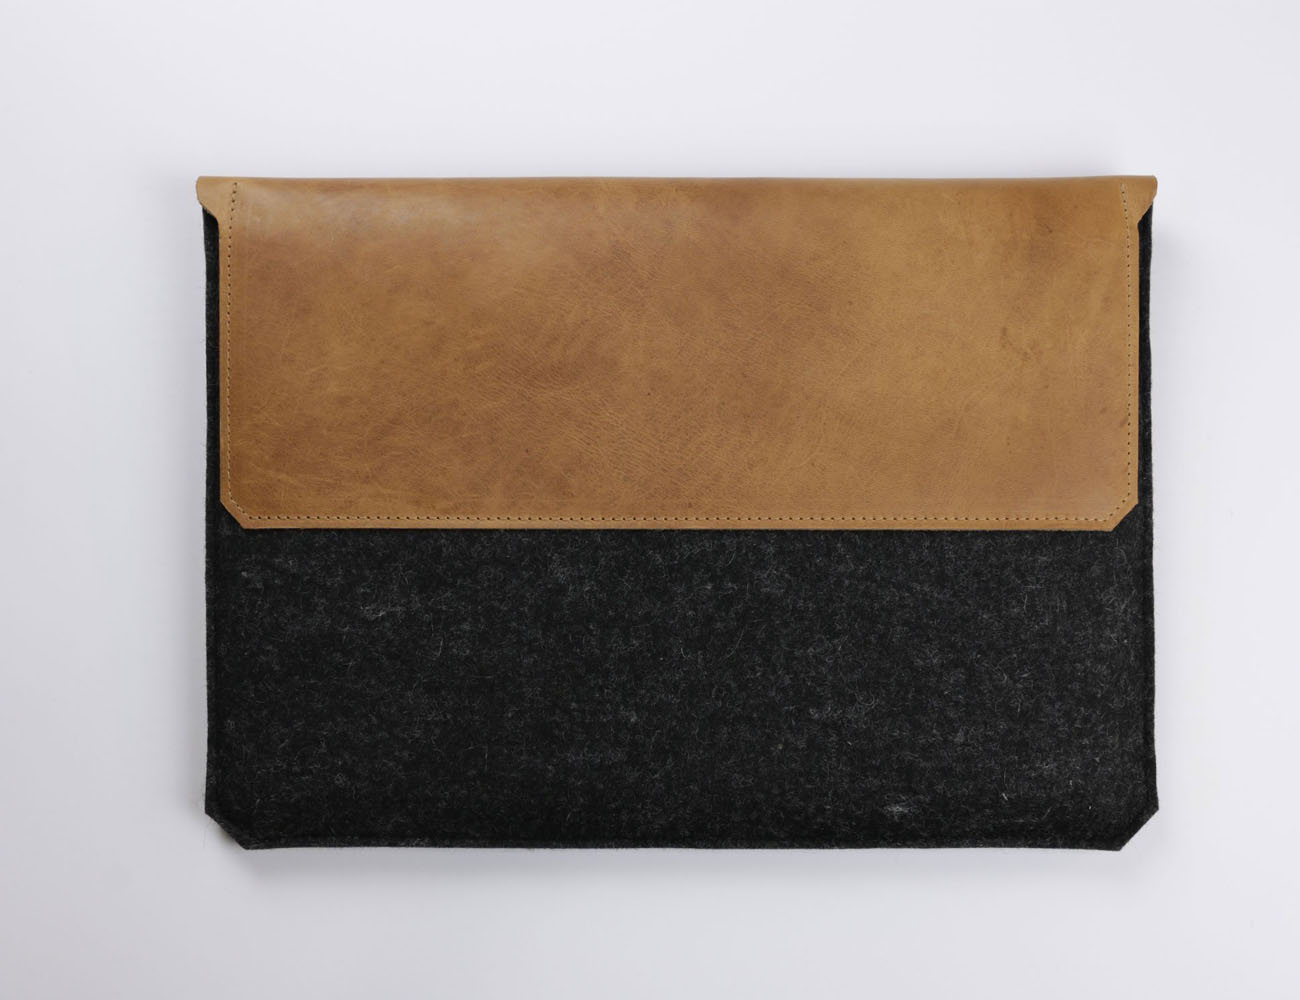 Leather & Felt MacBook Air Sleeve by Alexej Nagel